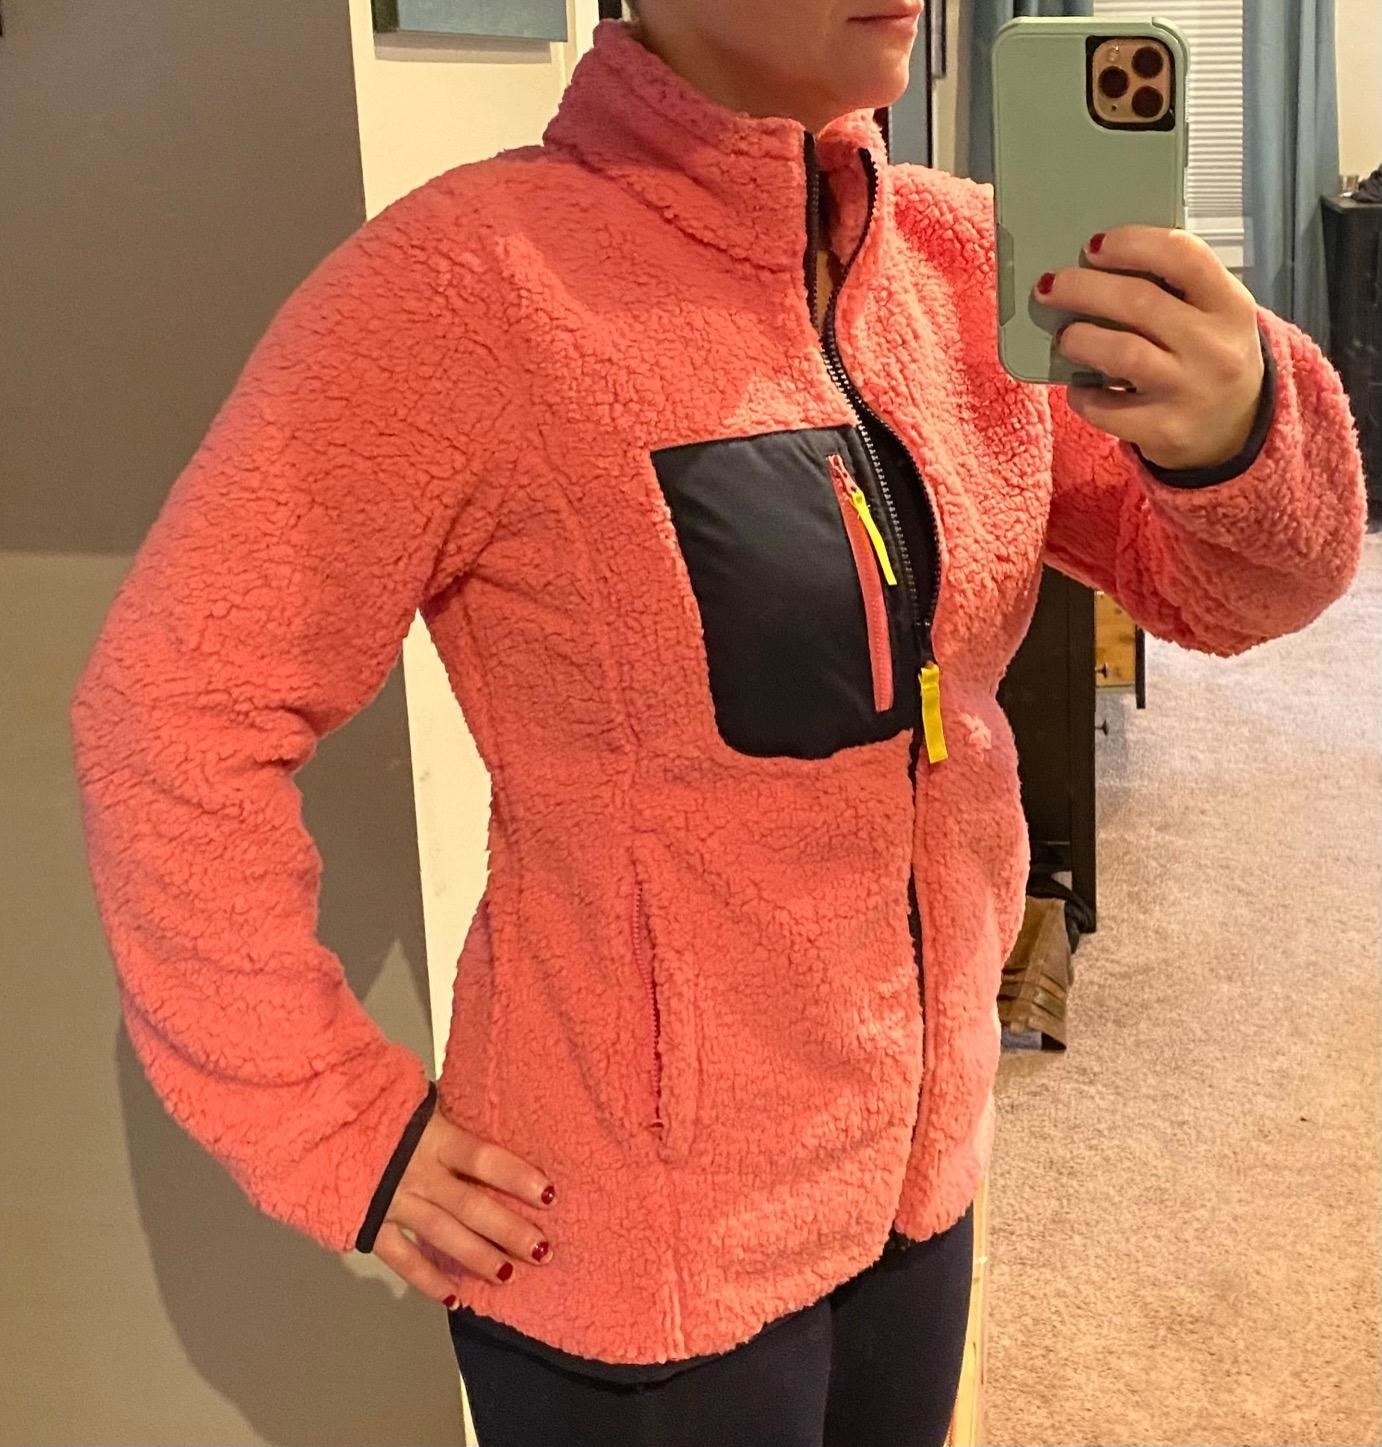 Reviewer wearing the pink/navy jacket